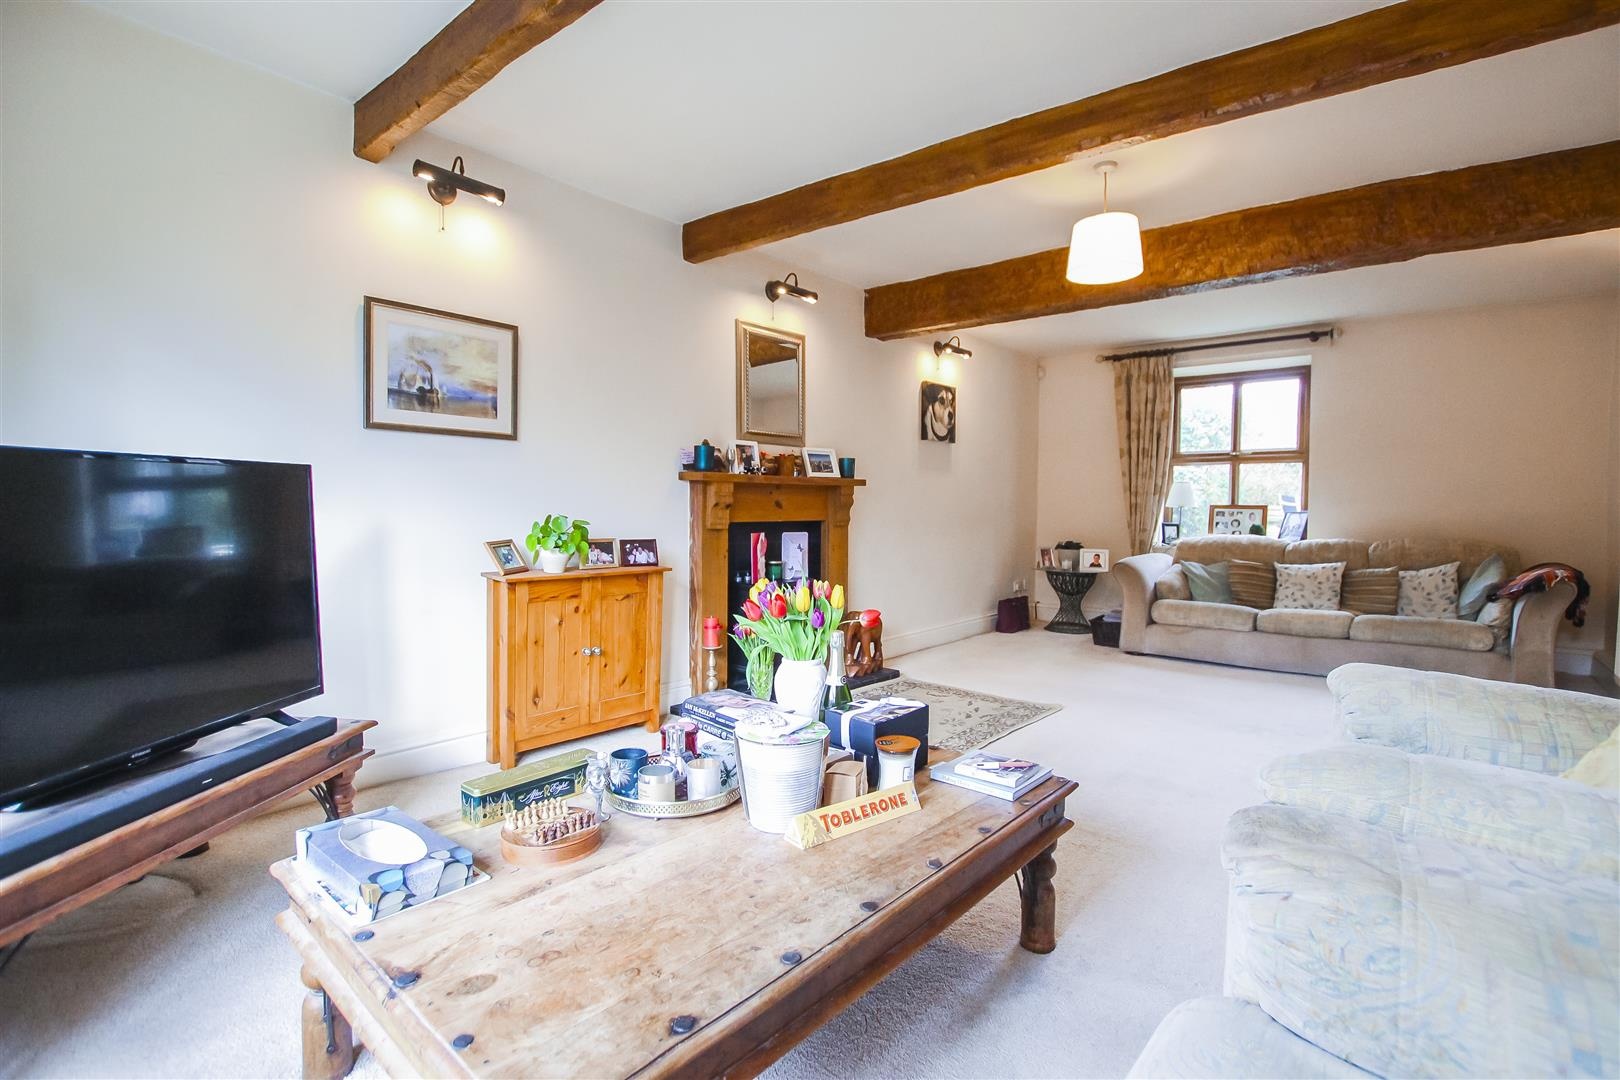 4 Bedroom Farmhouse For Sale - Image 24